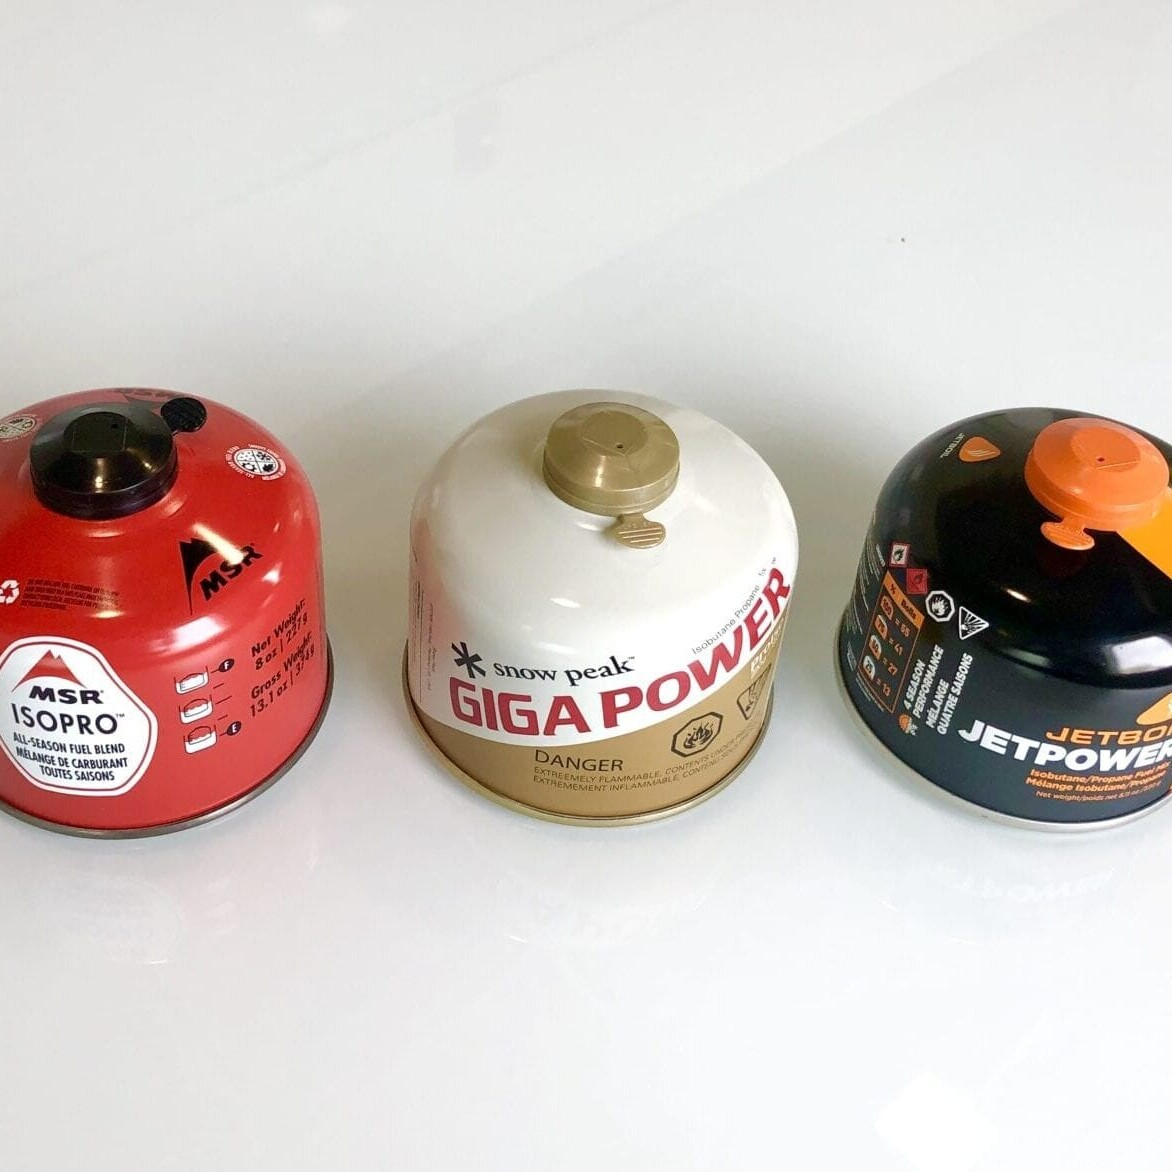 Three different brands of fuel canisters.